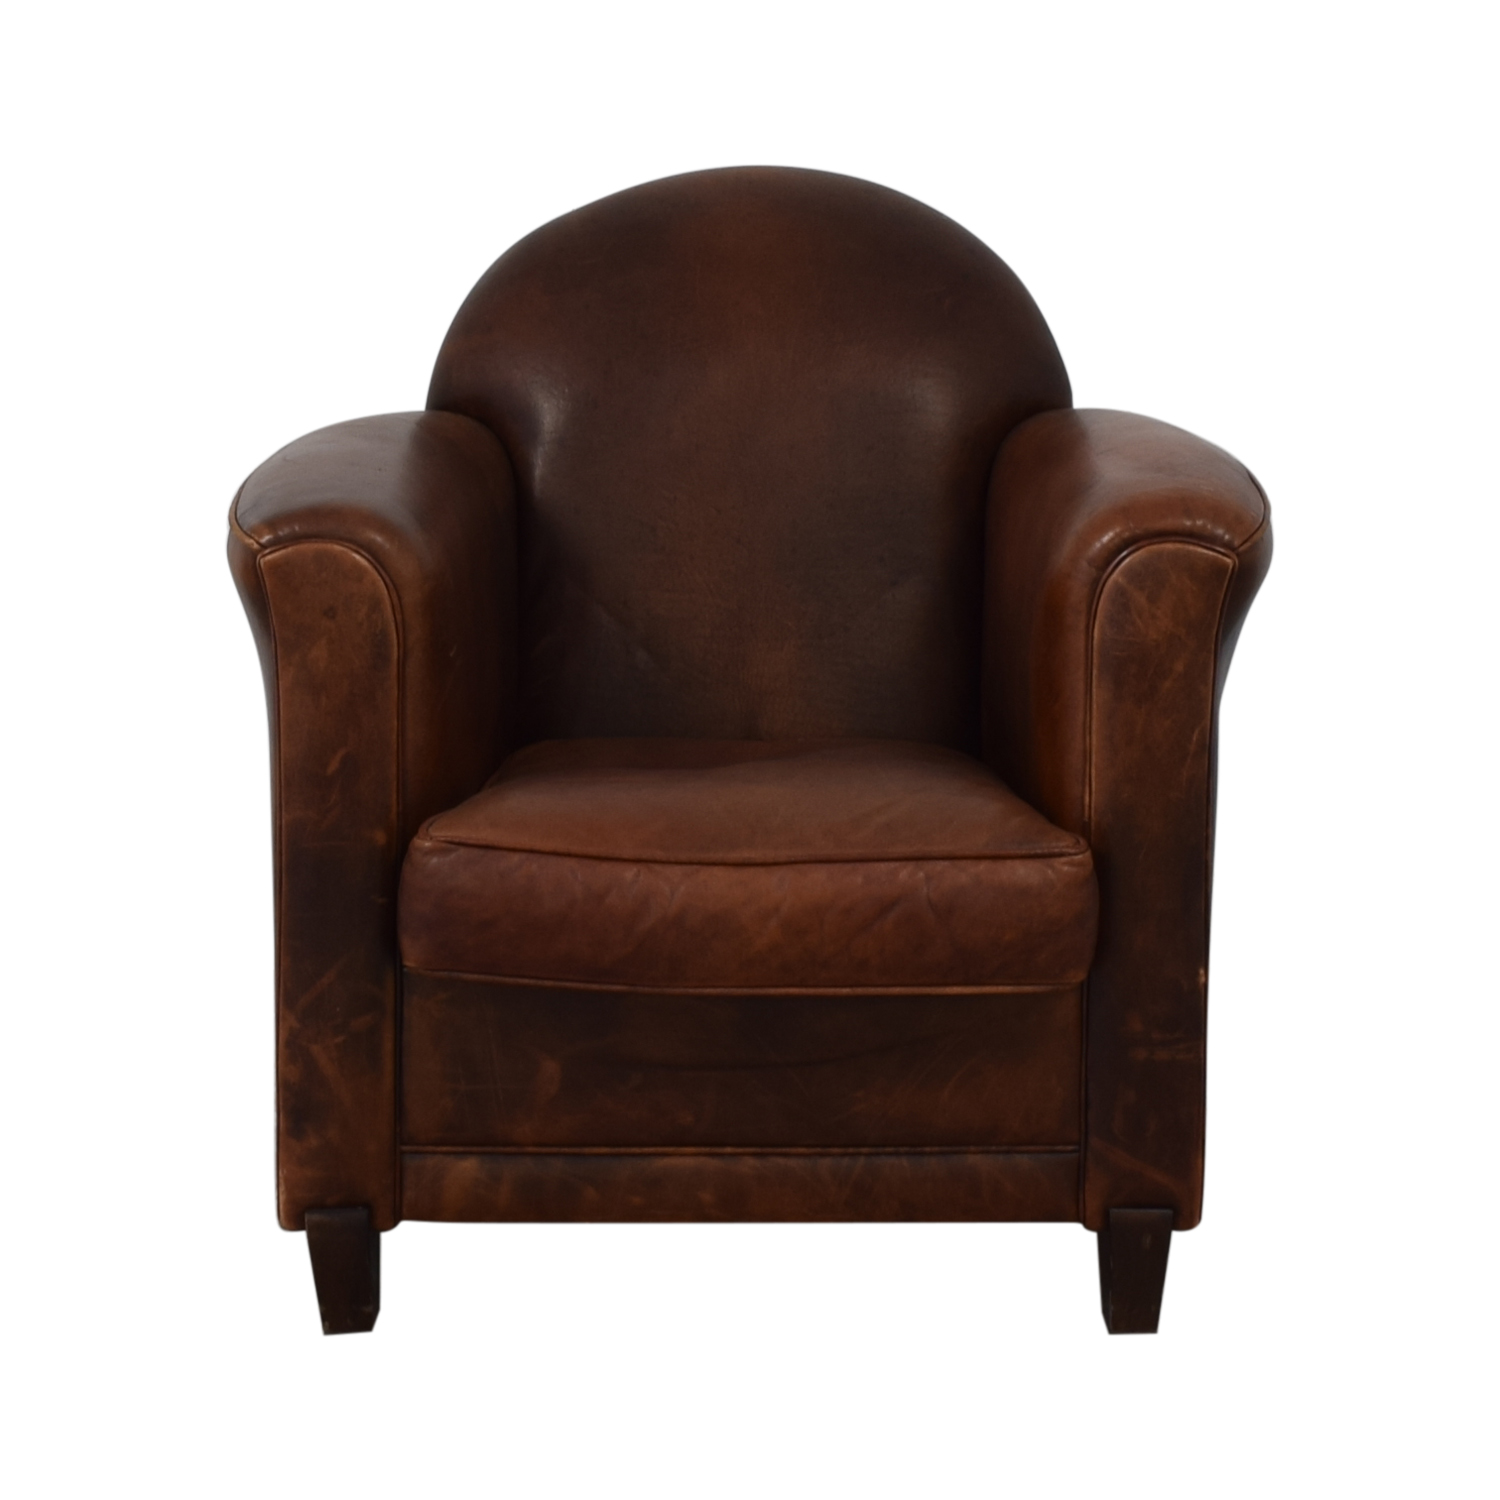 French Leather Club Chair brown